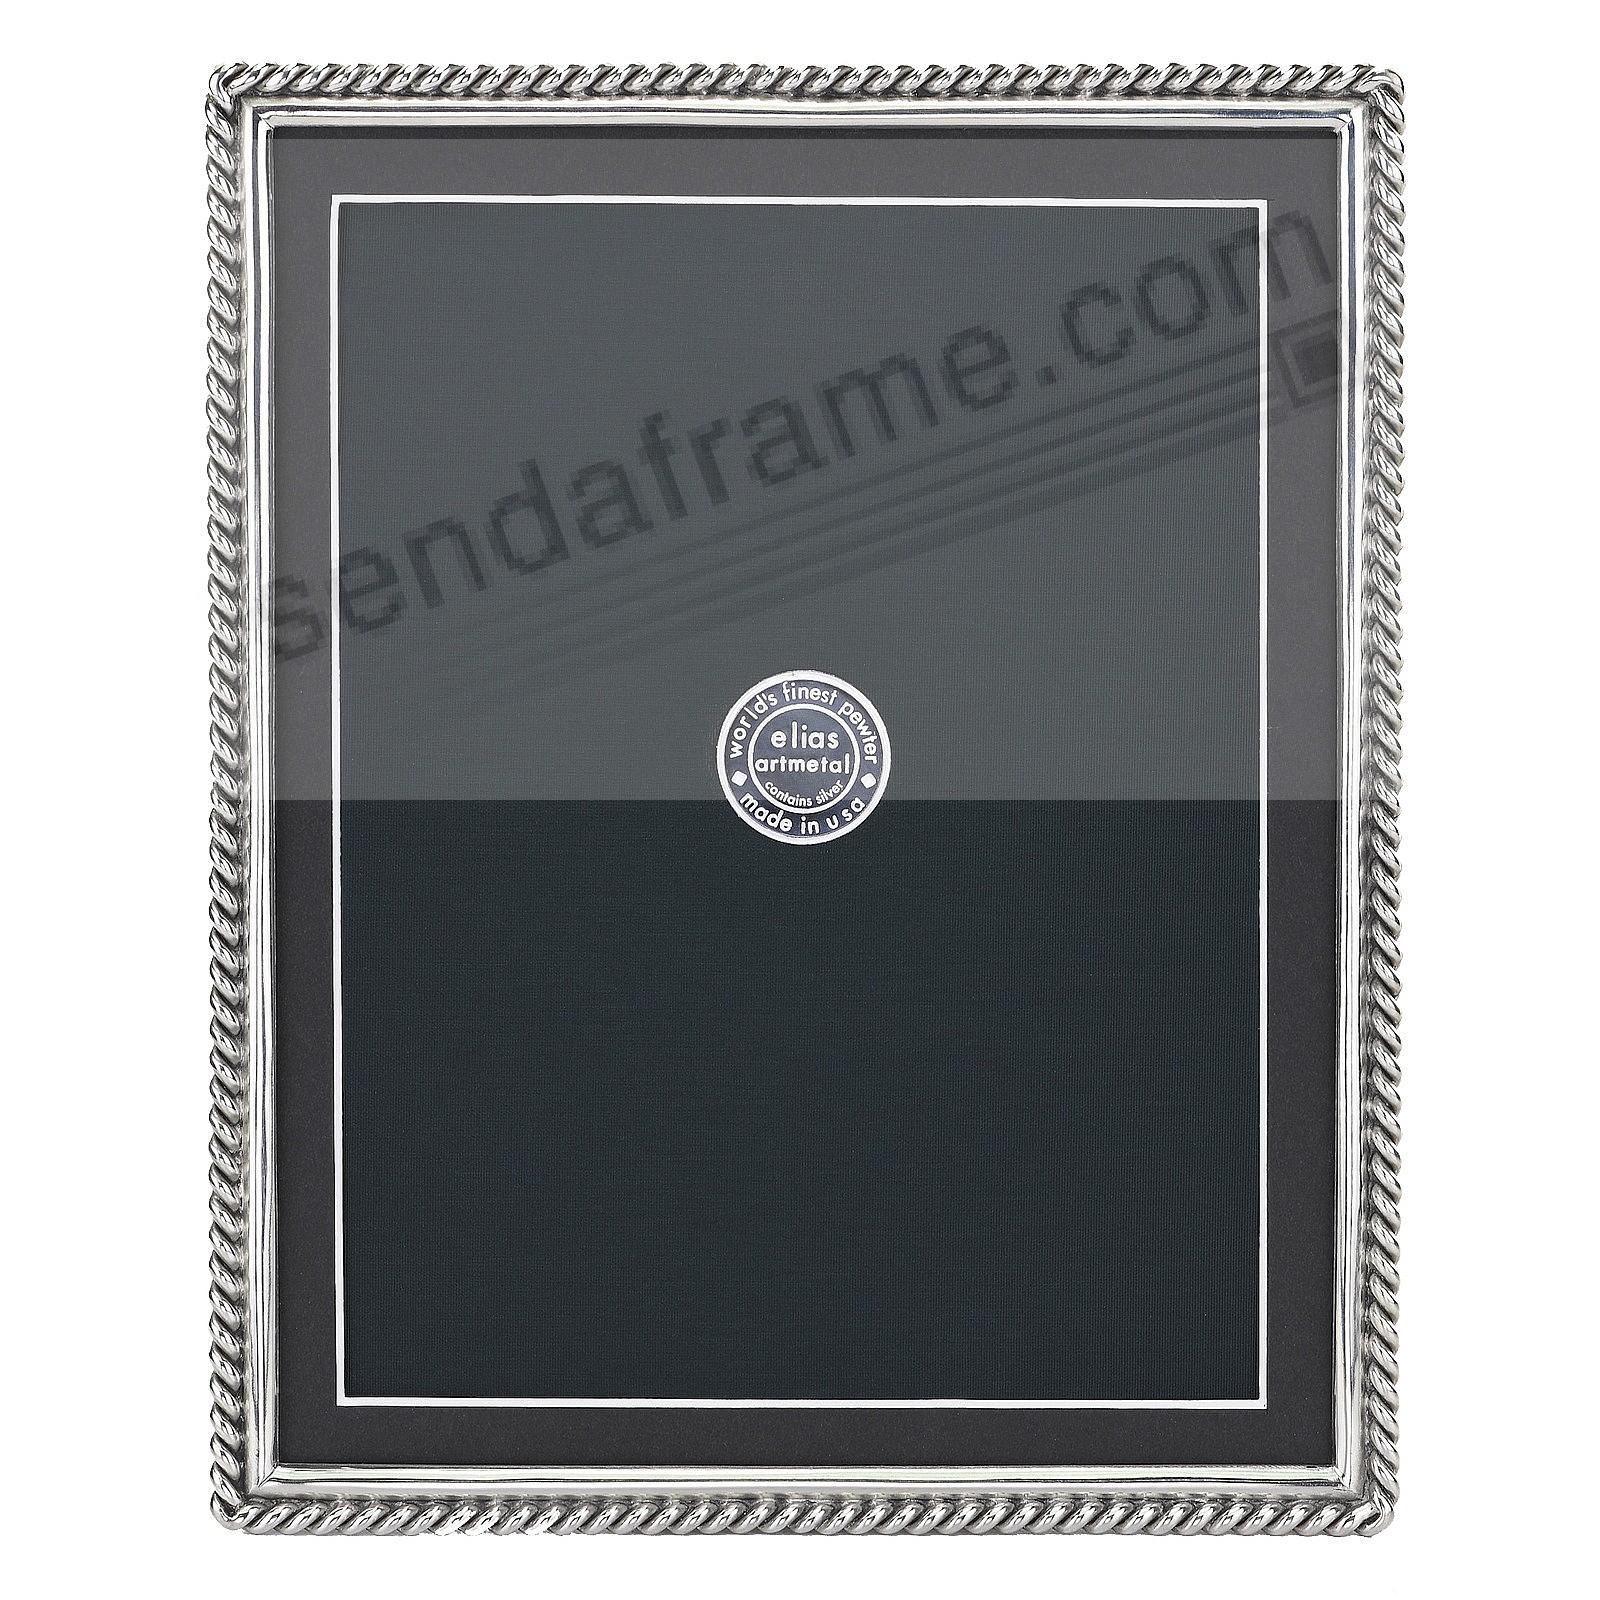 CHAIN Fine Silvered Pewter frame 8x10/7x9 by Elias Artmetal®